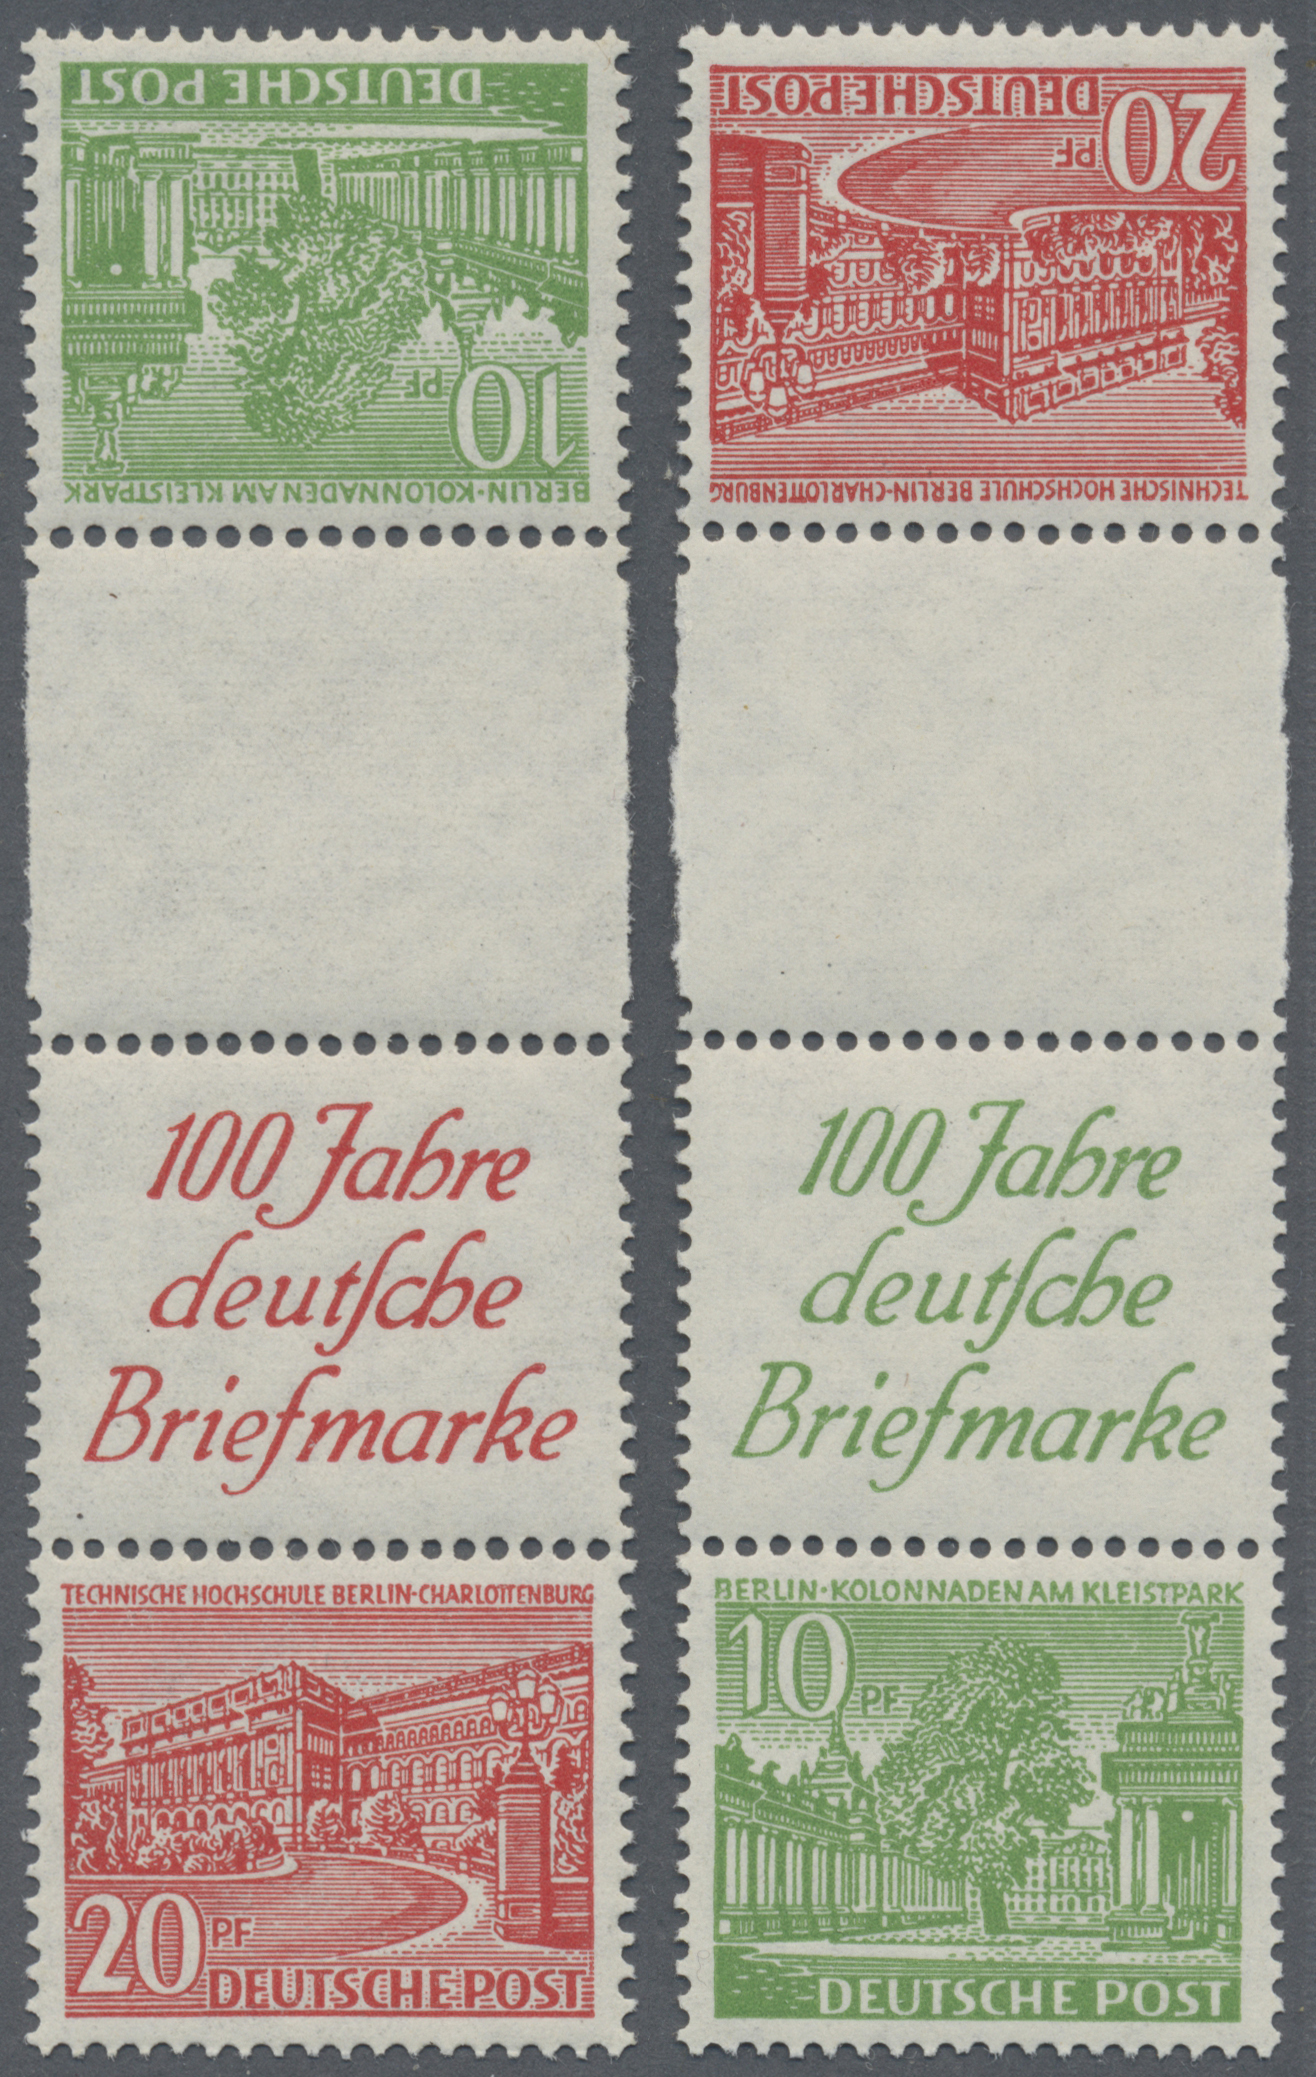 Lot 38212 - berlin - zusammendrucke  -  Auktionshaus Christoph Gärtner GmbH & Co. KG Collections Germany,  Collections Supplement, Surprise boxes #39 Day 7